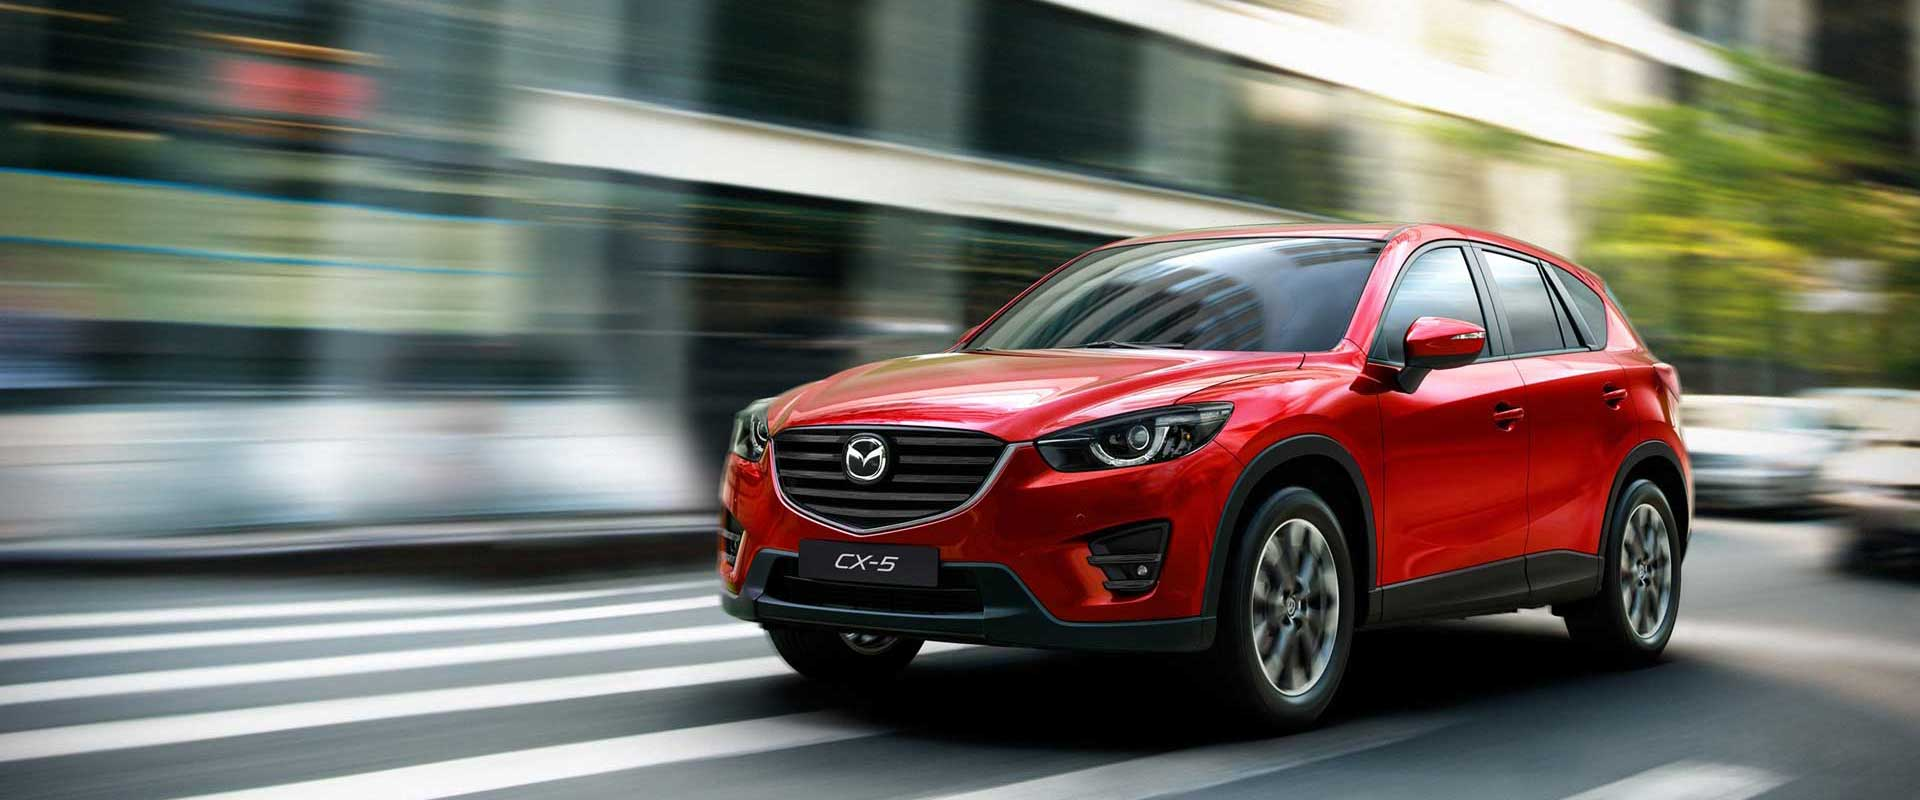 Mazda-Alicante-CX-5-Slider-01